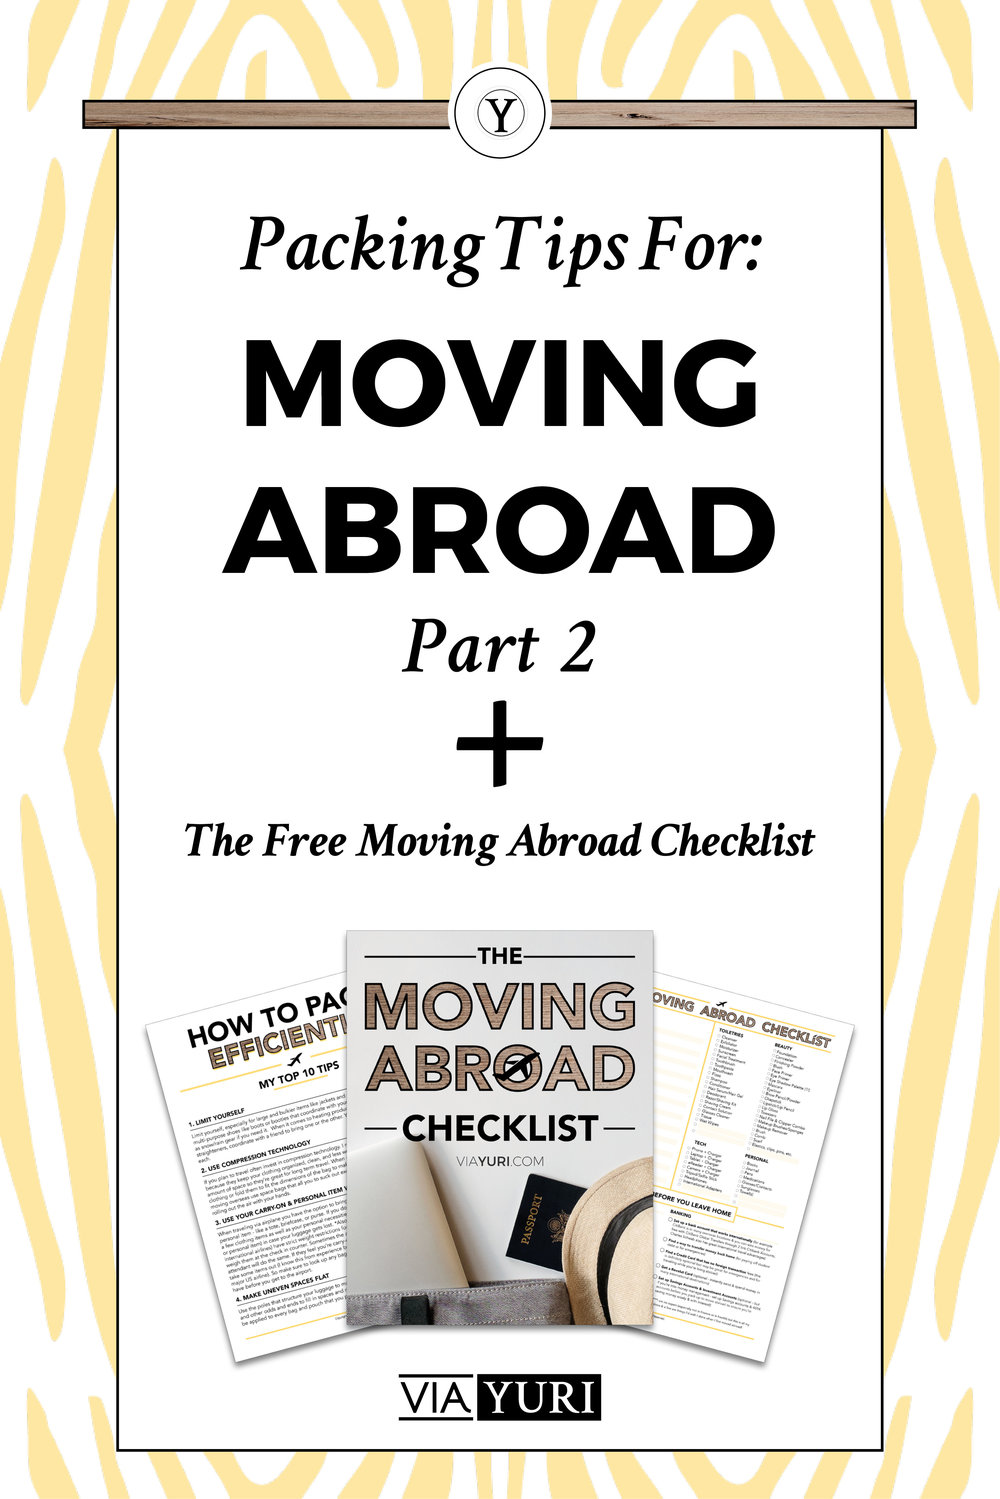 How to Pack Efficiently: Packing Tips for Moving Abroad. Plus check out Part 2 of the video series on how to pack efficiently and get the FREE TRAVEL CHECKLIST & PLANNER!